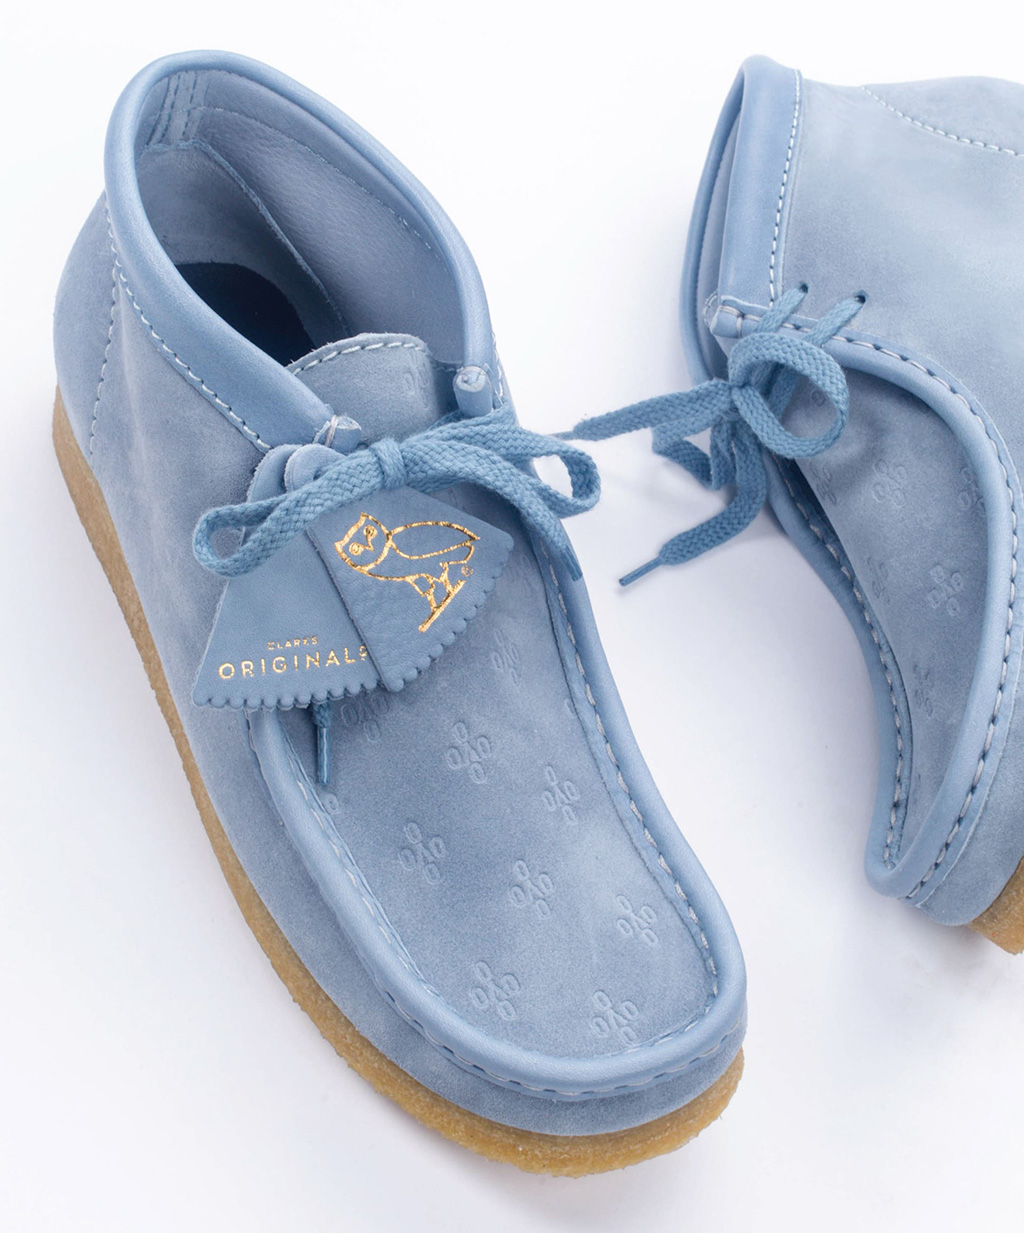 OVO x Clarks Wallabe Made in Italy Collection Blue